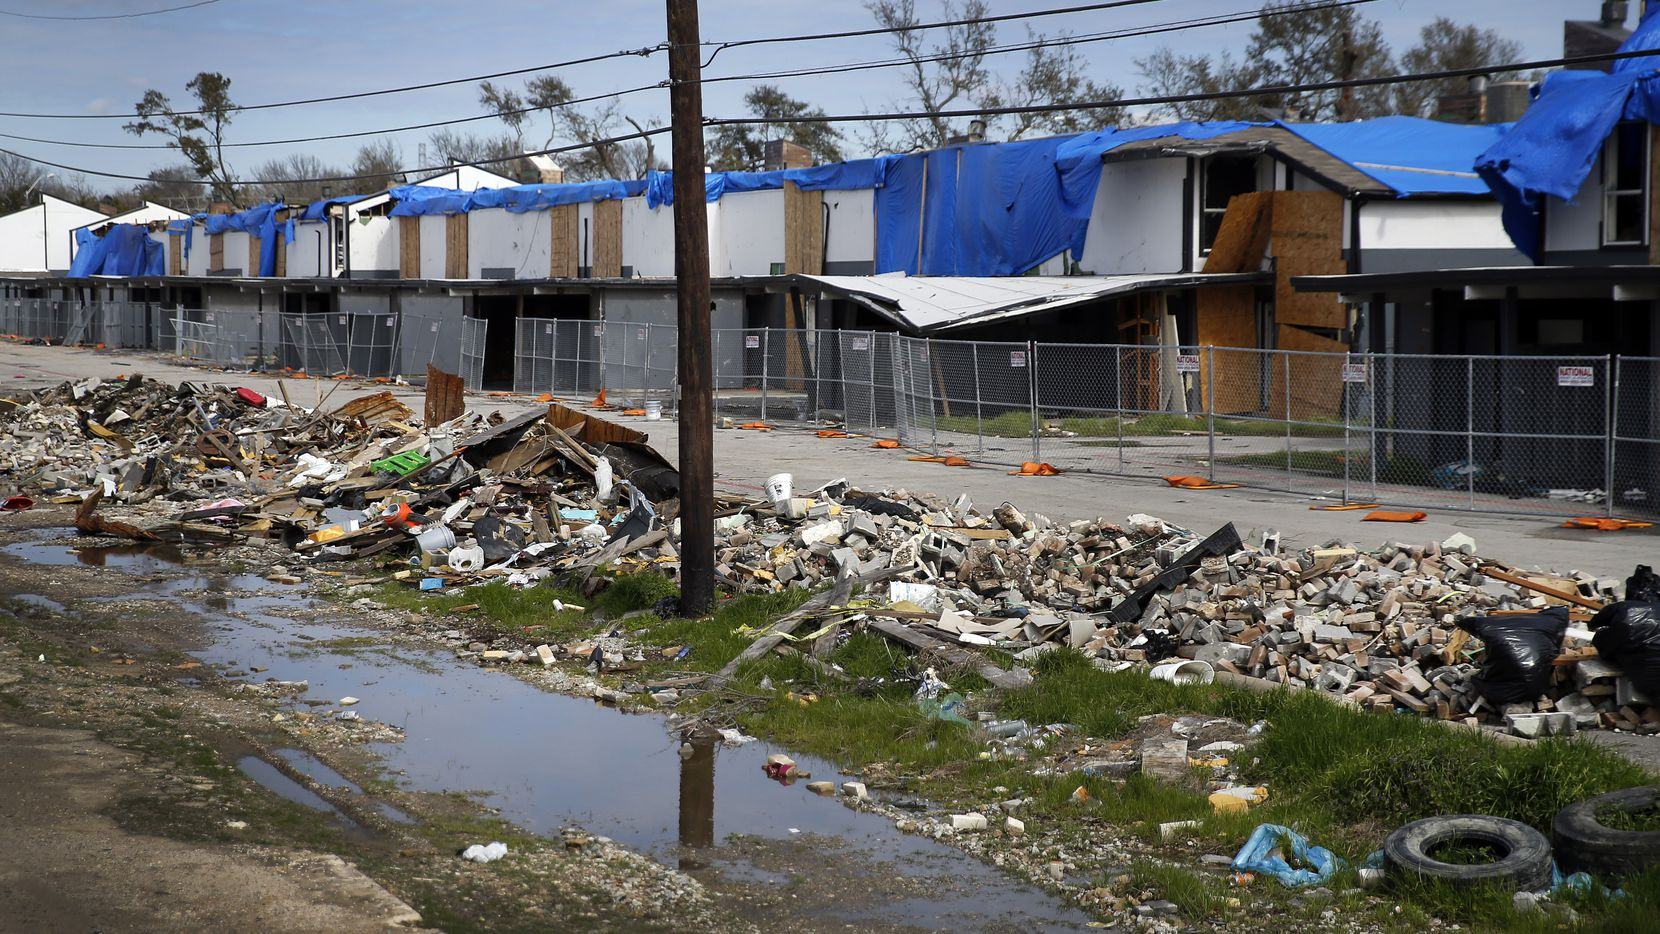 Four months after the tornado tore through northwest Dallas, the Southwind townhouse complex on Brockbank Drive still stands. Its residents have been scattered, making room for the homeless who have taken shelter amid the ruins.